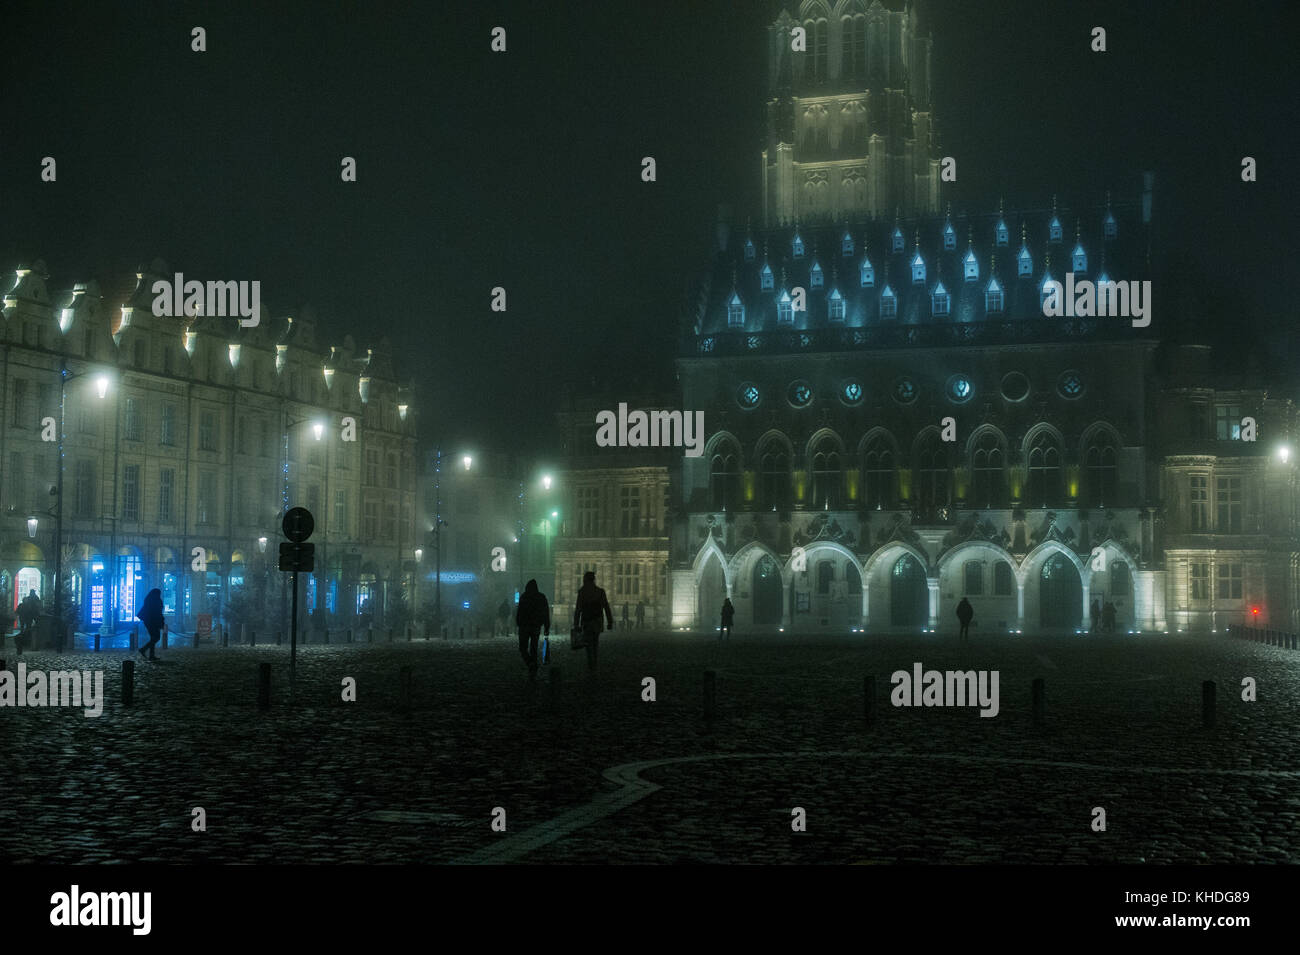 Nighttime view of the town square, town hall and belfry in Arras, France Stock Photo